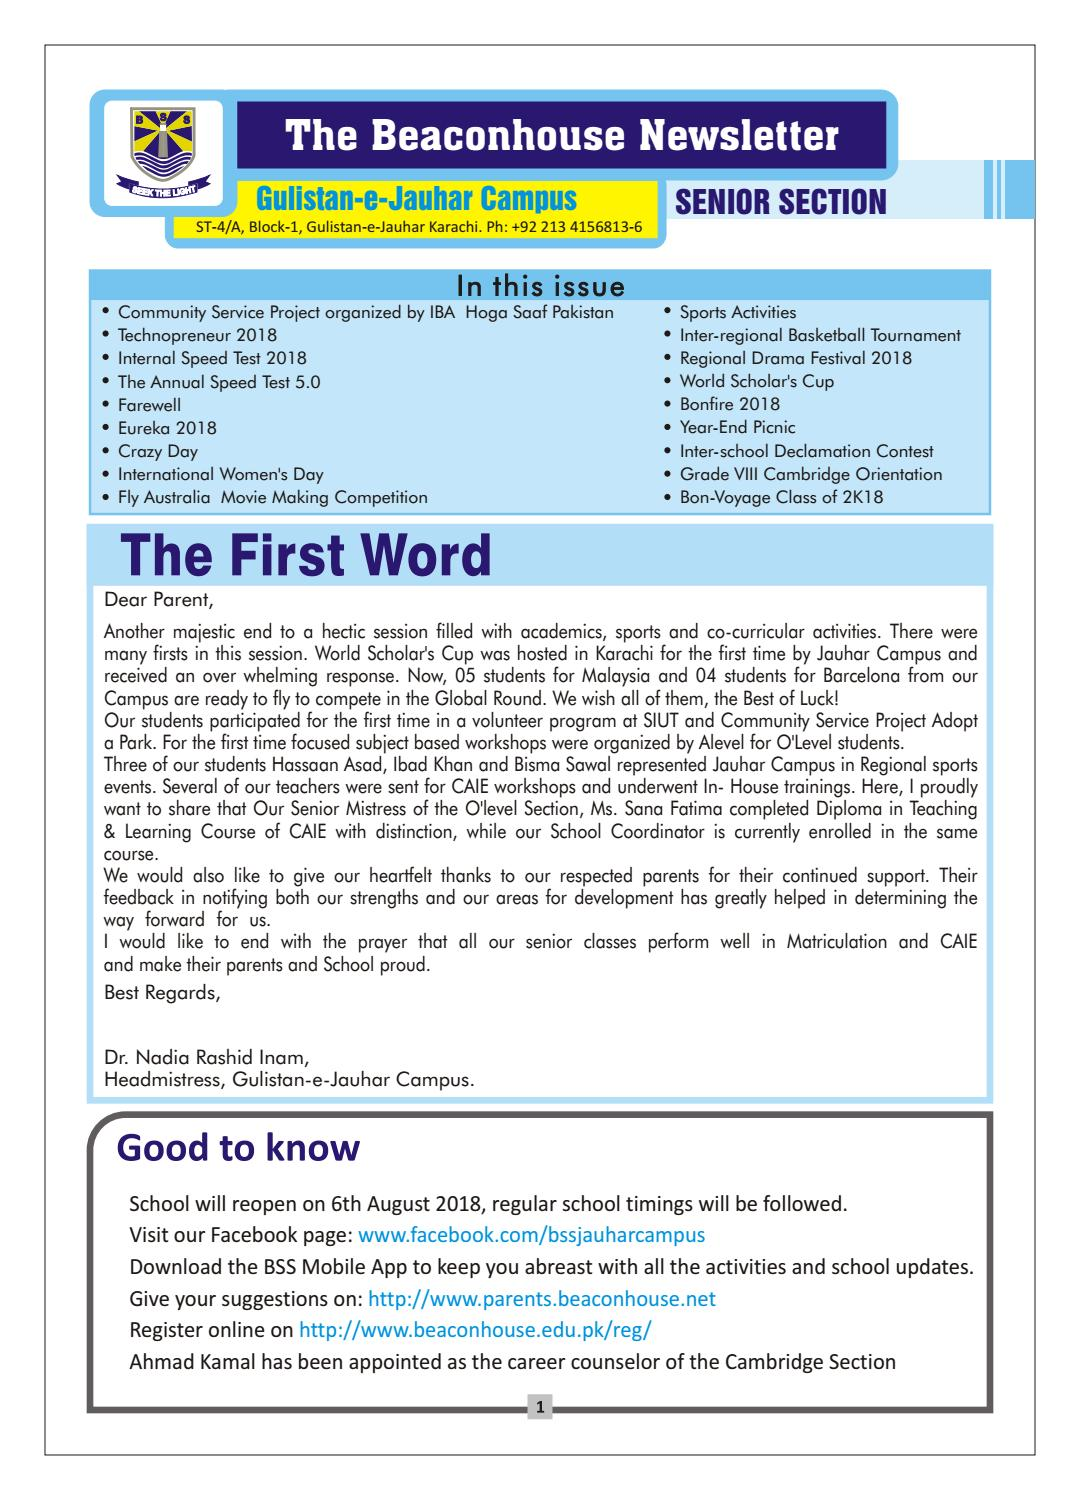 News Letter senior section2018-19 by Beaconhouse - issuu